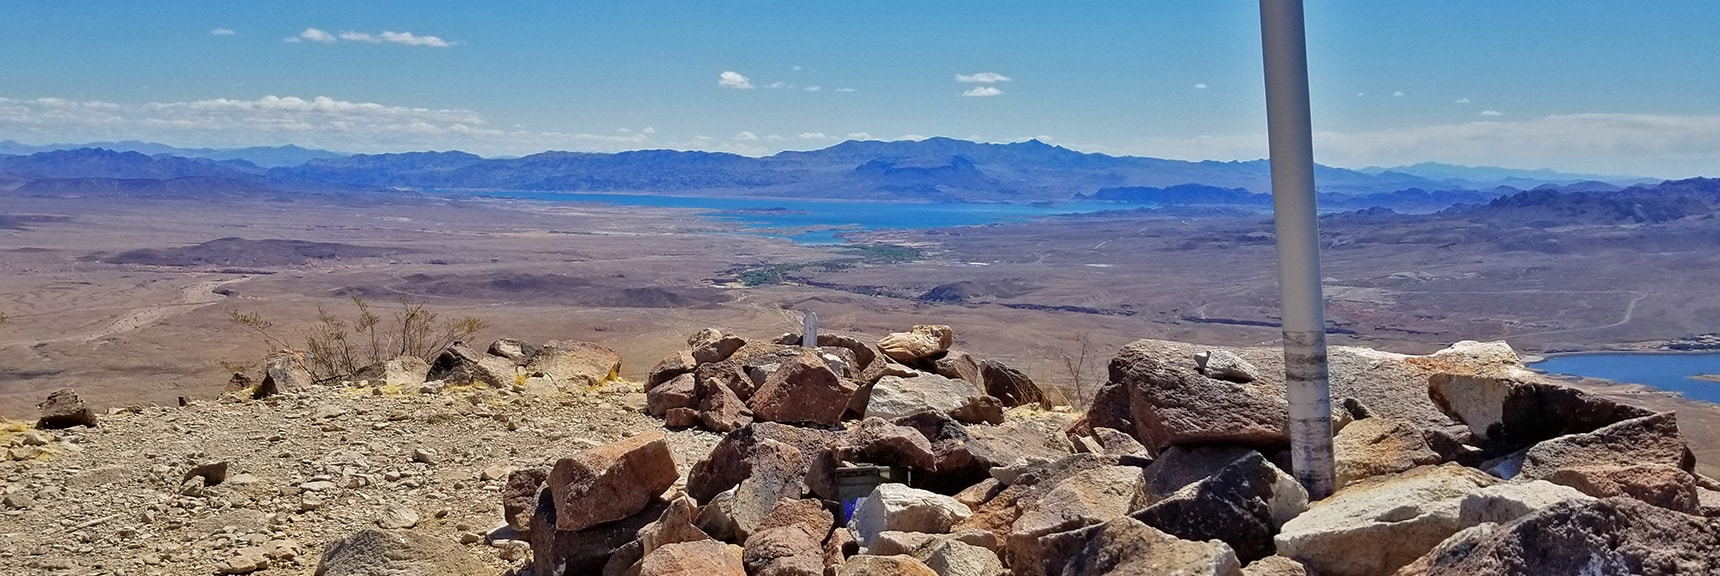 Lake Mead, Fortification Hill, Black Mesa, Hamblin Mts. Mt Wilson from Summit | Lava Butte | Lake Mead National Recreation Area, Nevada